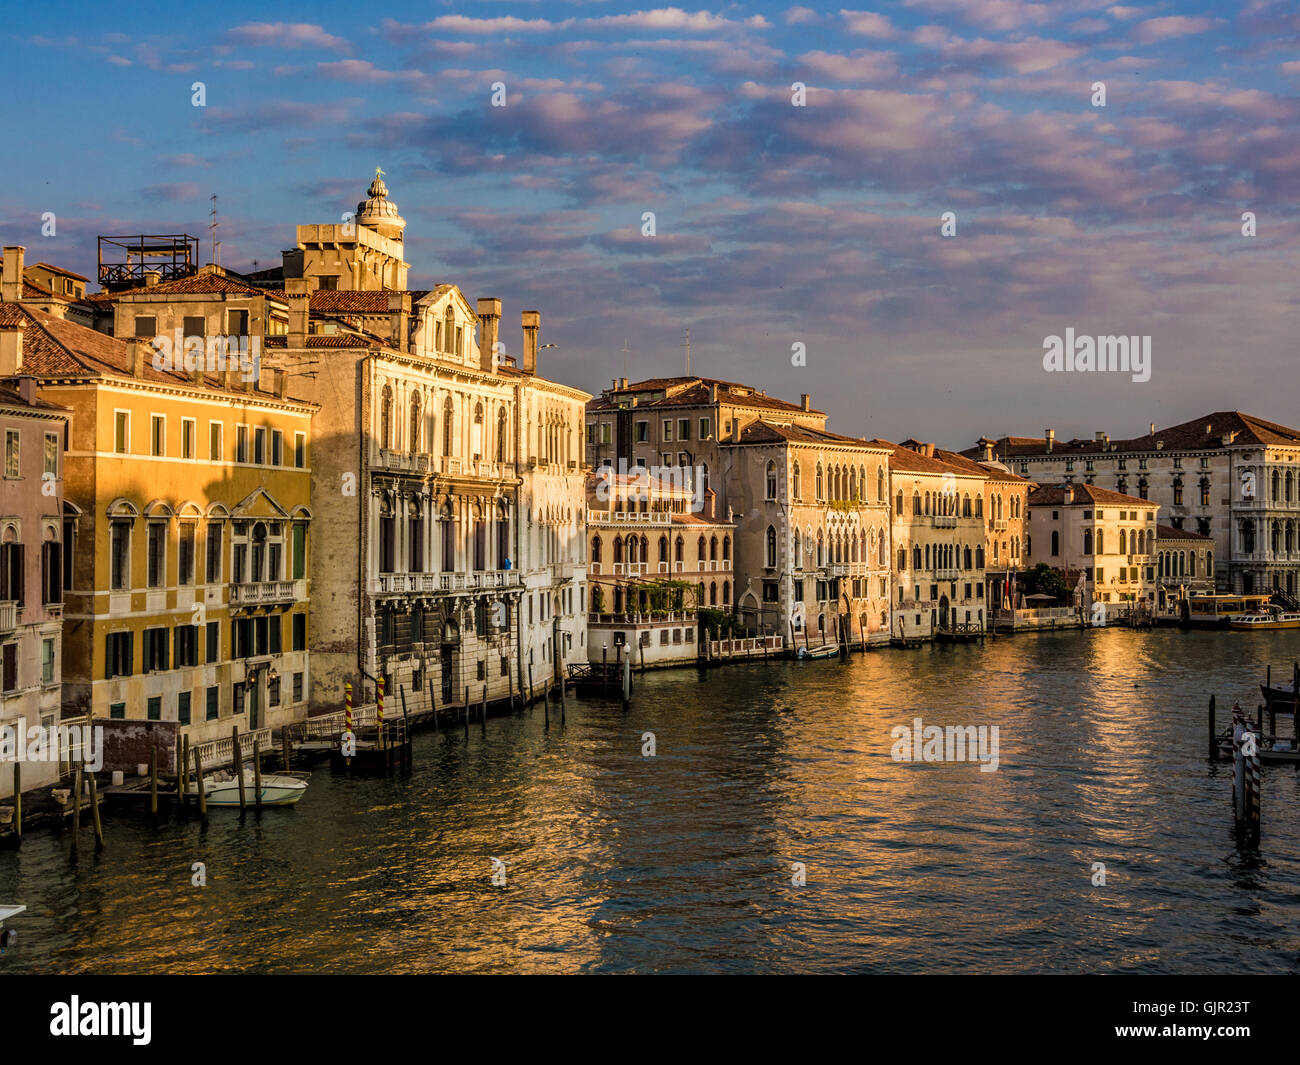 Traditional venetian buildings along the Grand Canal, at sunrise. Venice. Italy. - Stock Image